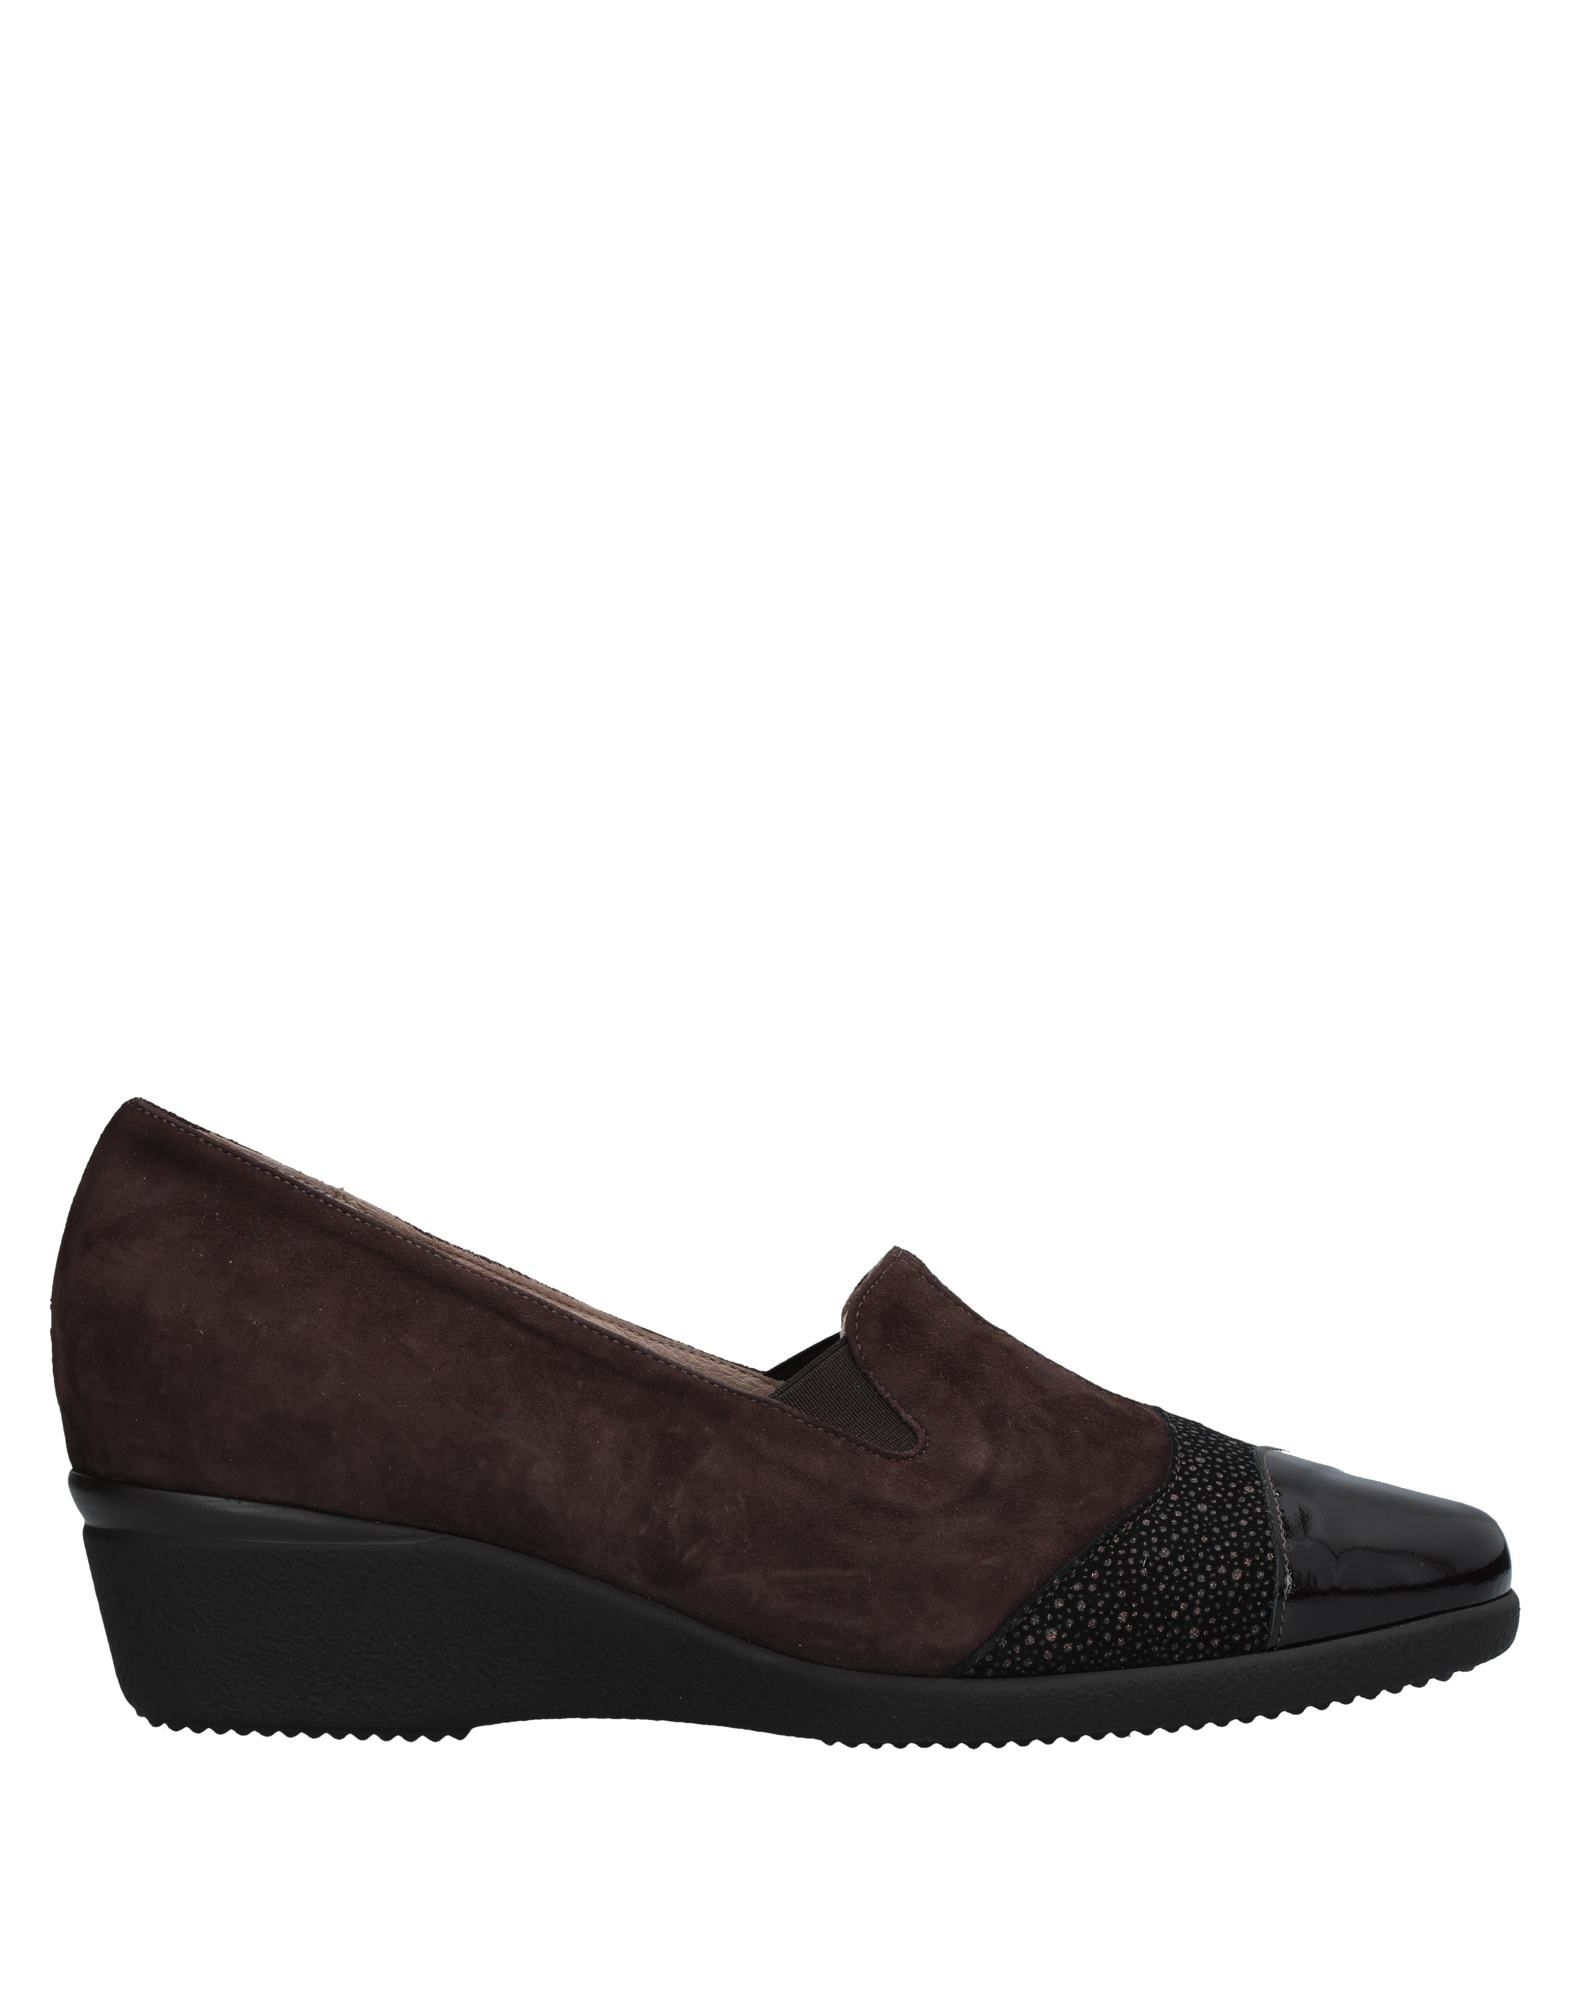 Soffice Sogno Loafers - Women Soffice  Sogno Loafers online on  Soffice United Kingdom - 11529293NV 5b7450